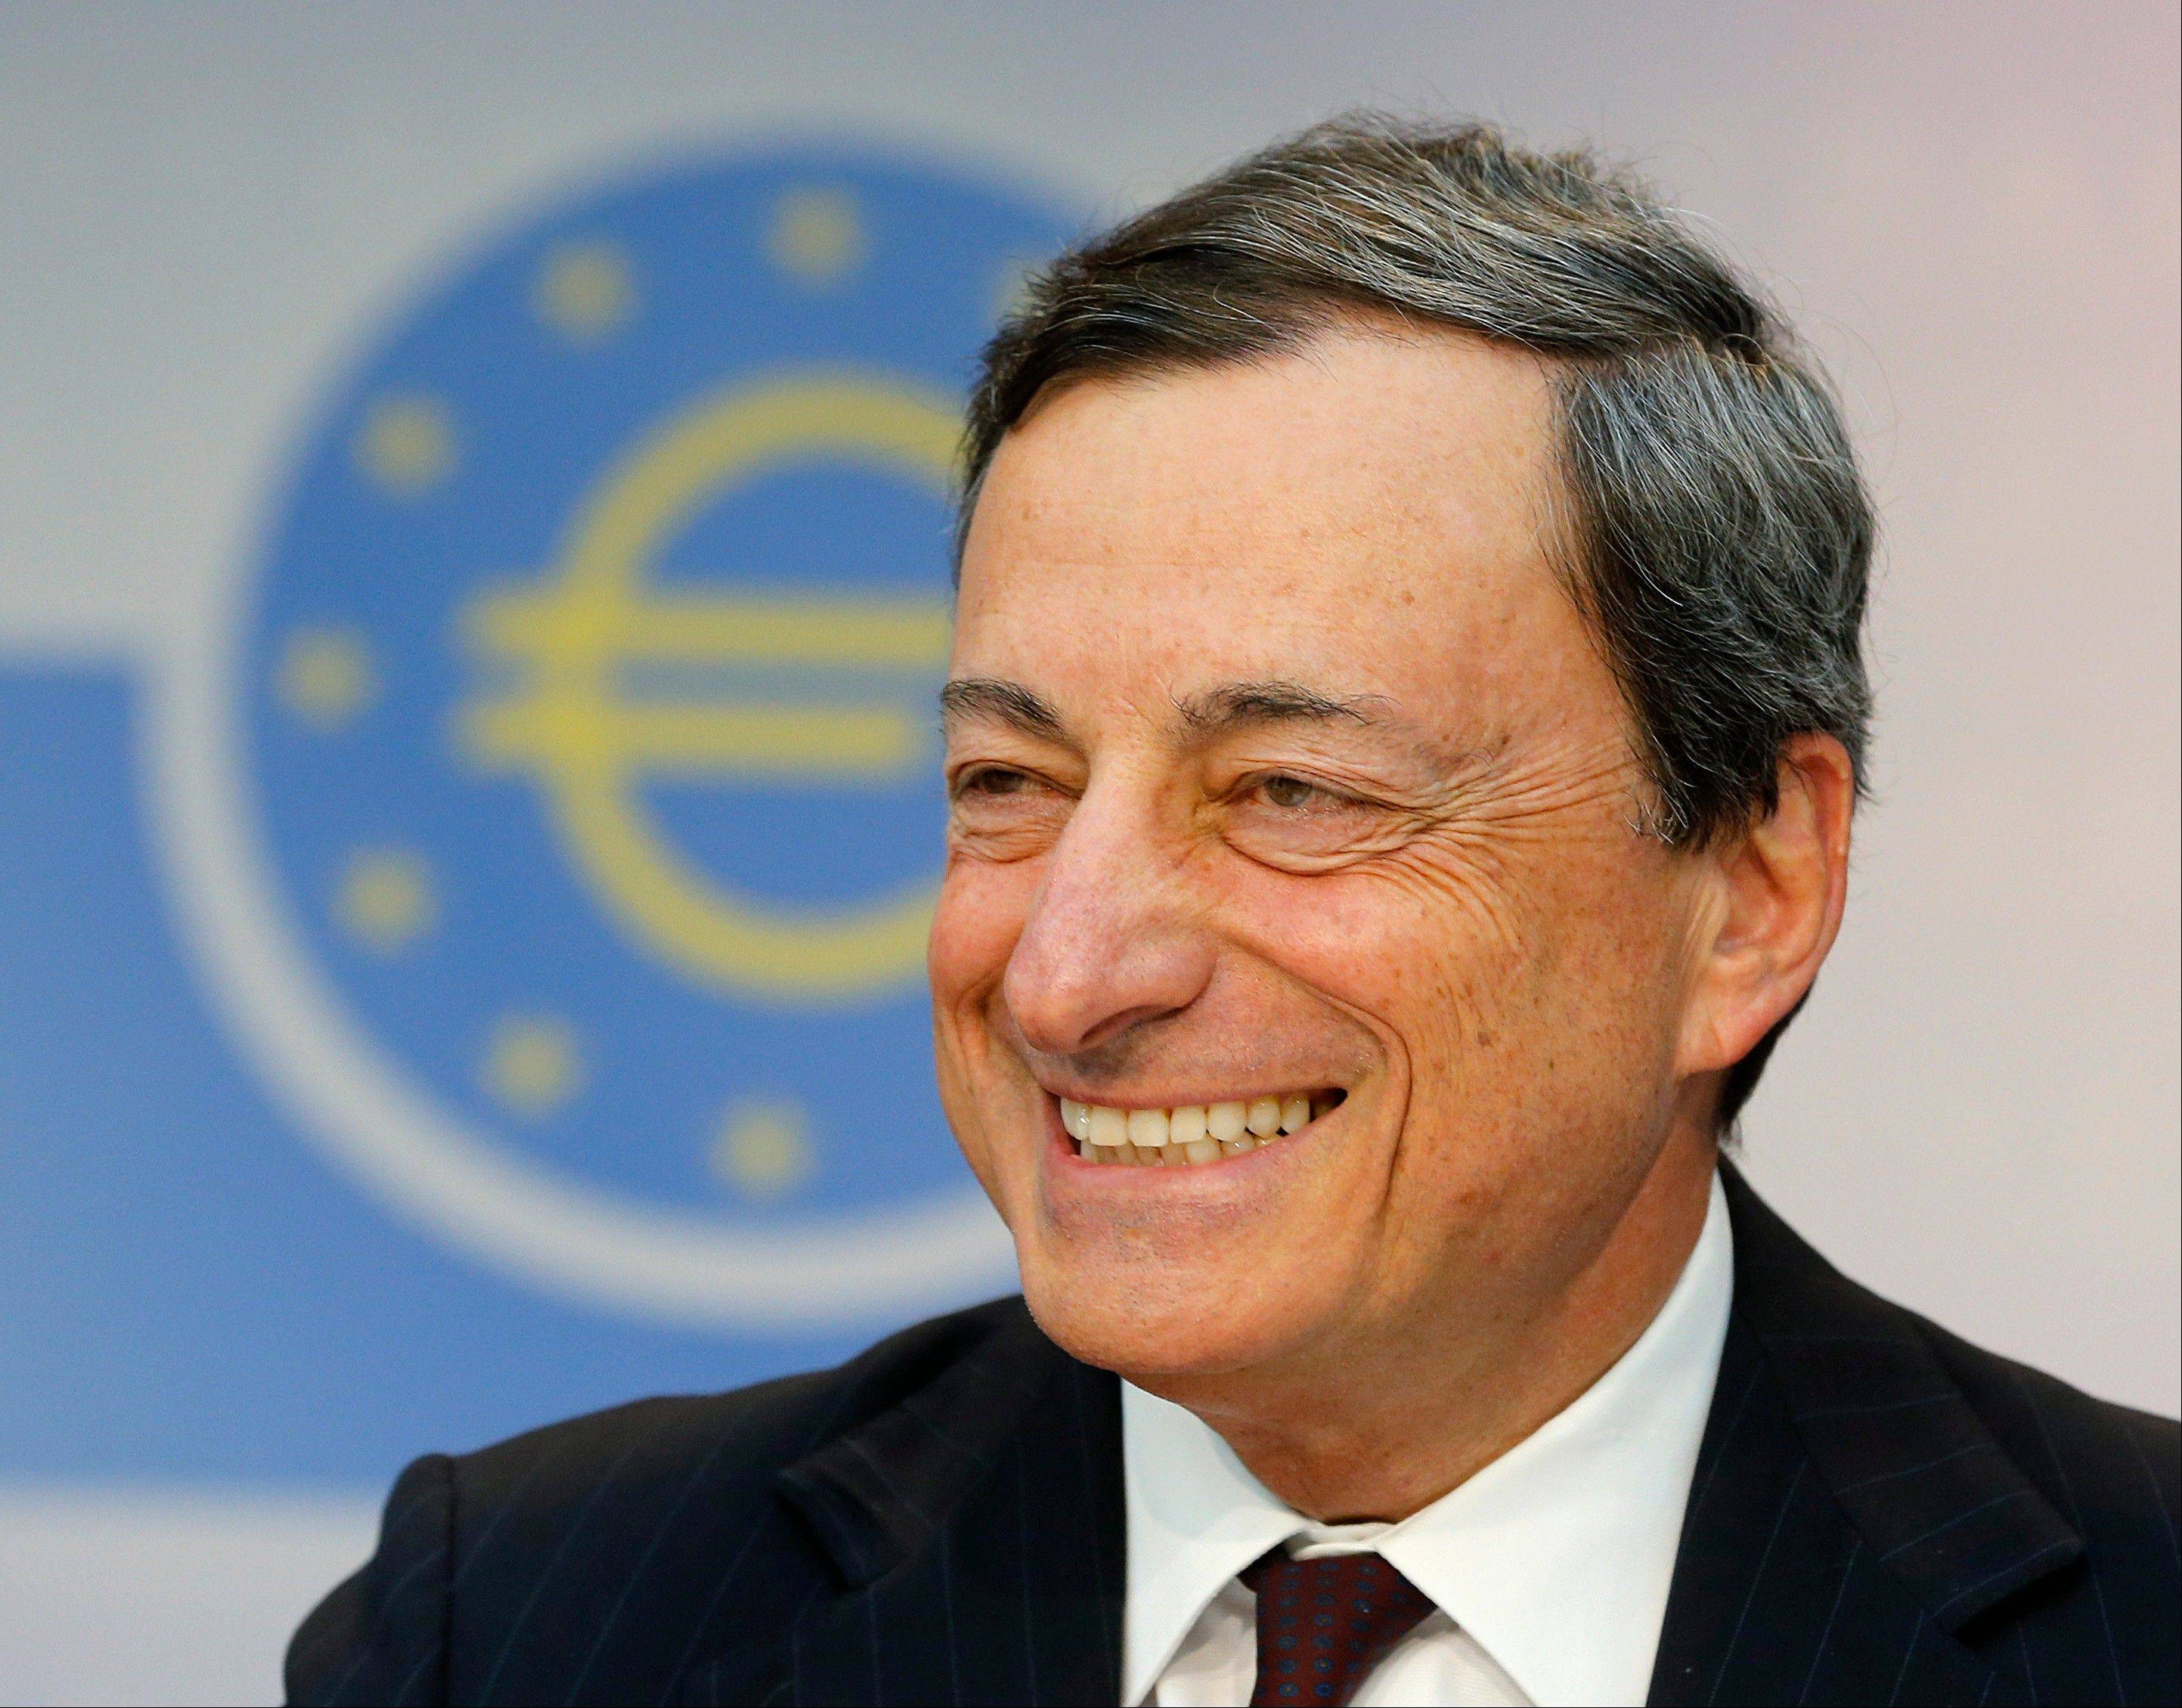 President of European Central Bank Mario Draghi smiles during a news conference in Frankfurt, Germany, Thursday, following a meeting of the ECB governing council. The ECB decided to leave the key interest rate unchanged.